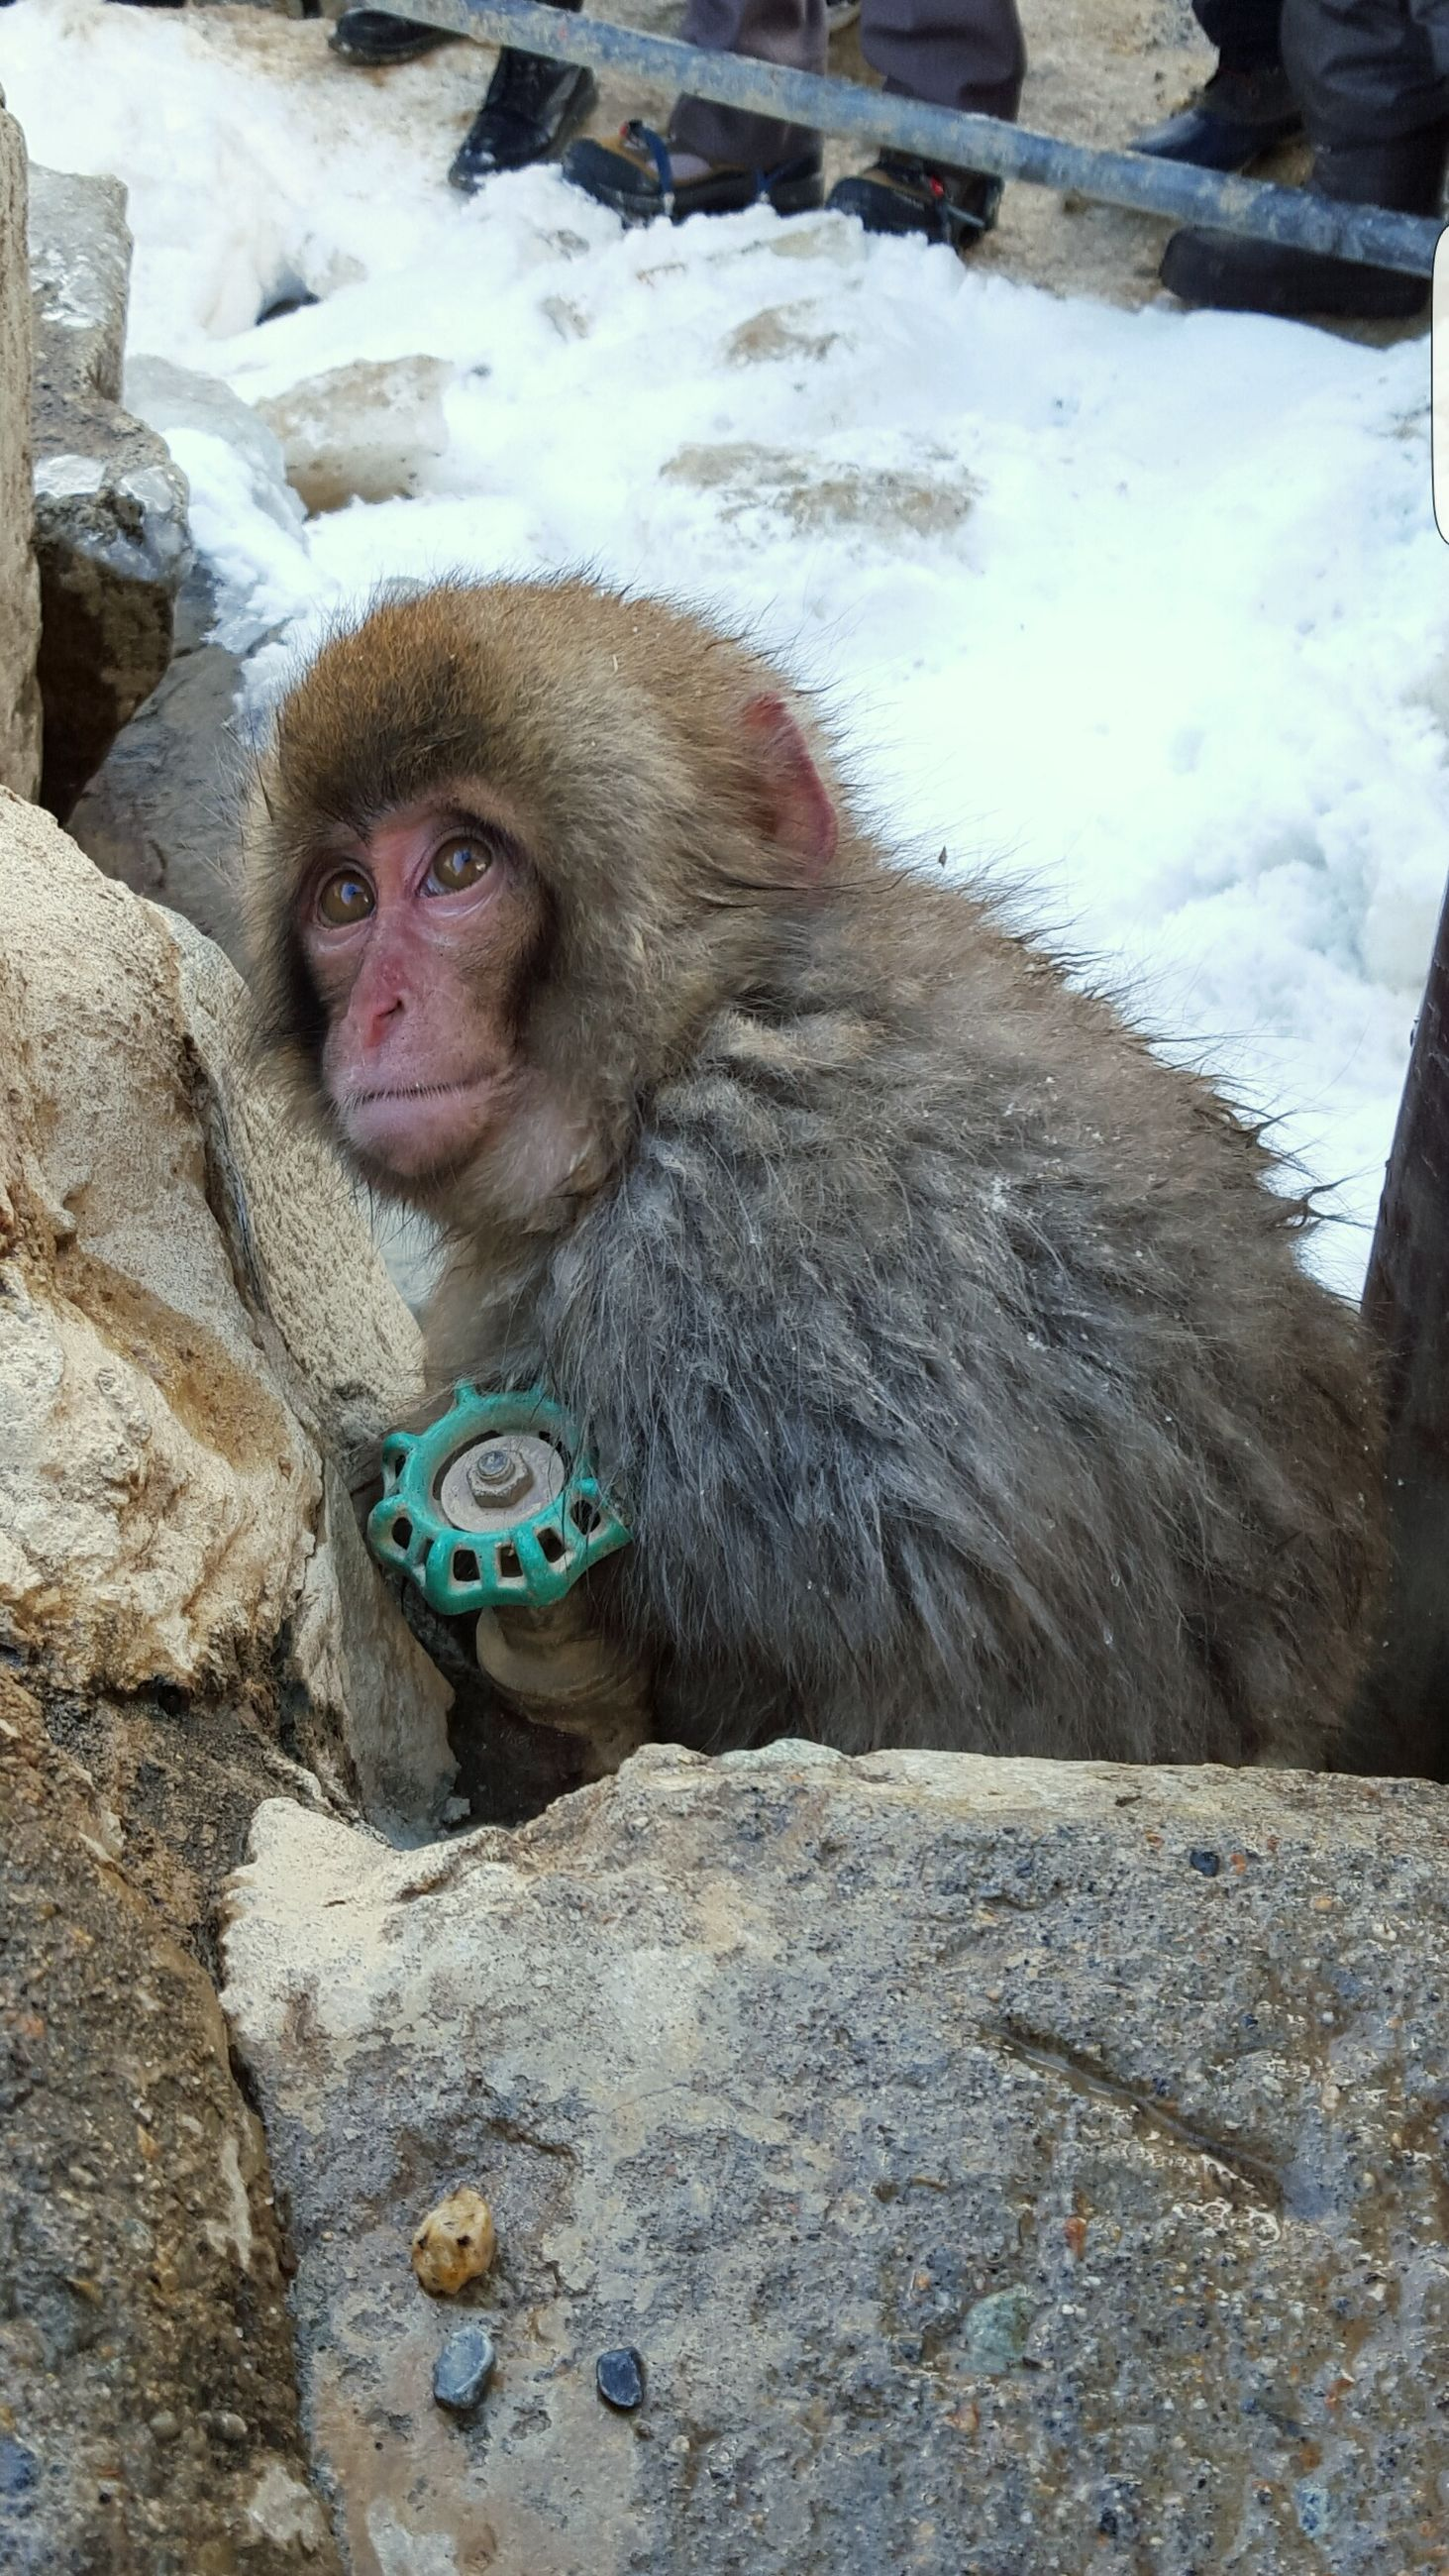 animal themes, one animal, mammal, no people, day, outdoors, close-up, monkey, pets